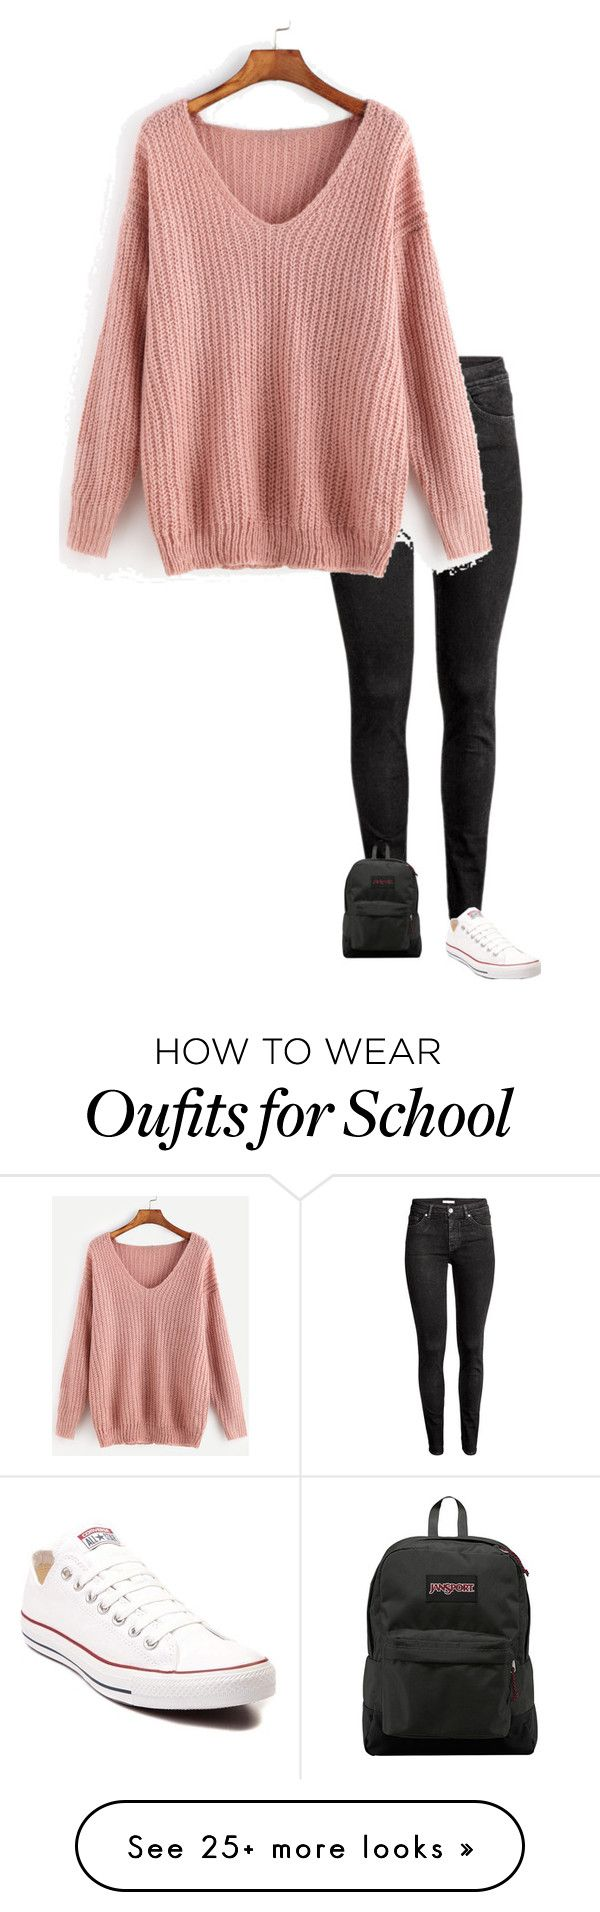 25+ Best Ideas About Outfits For School On Pinterest